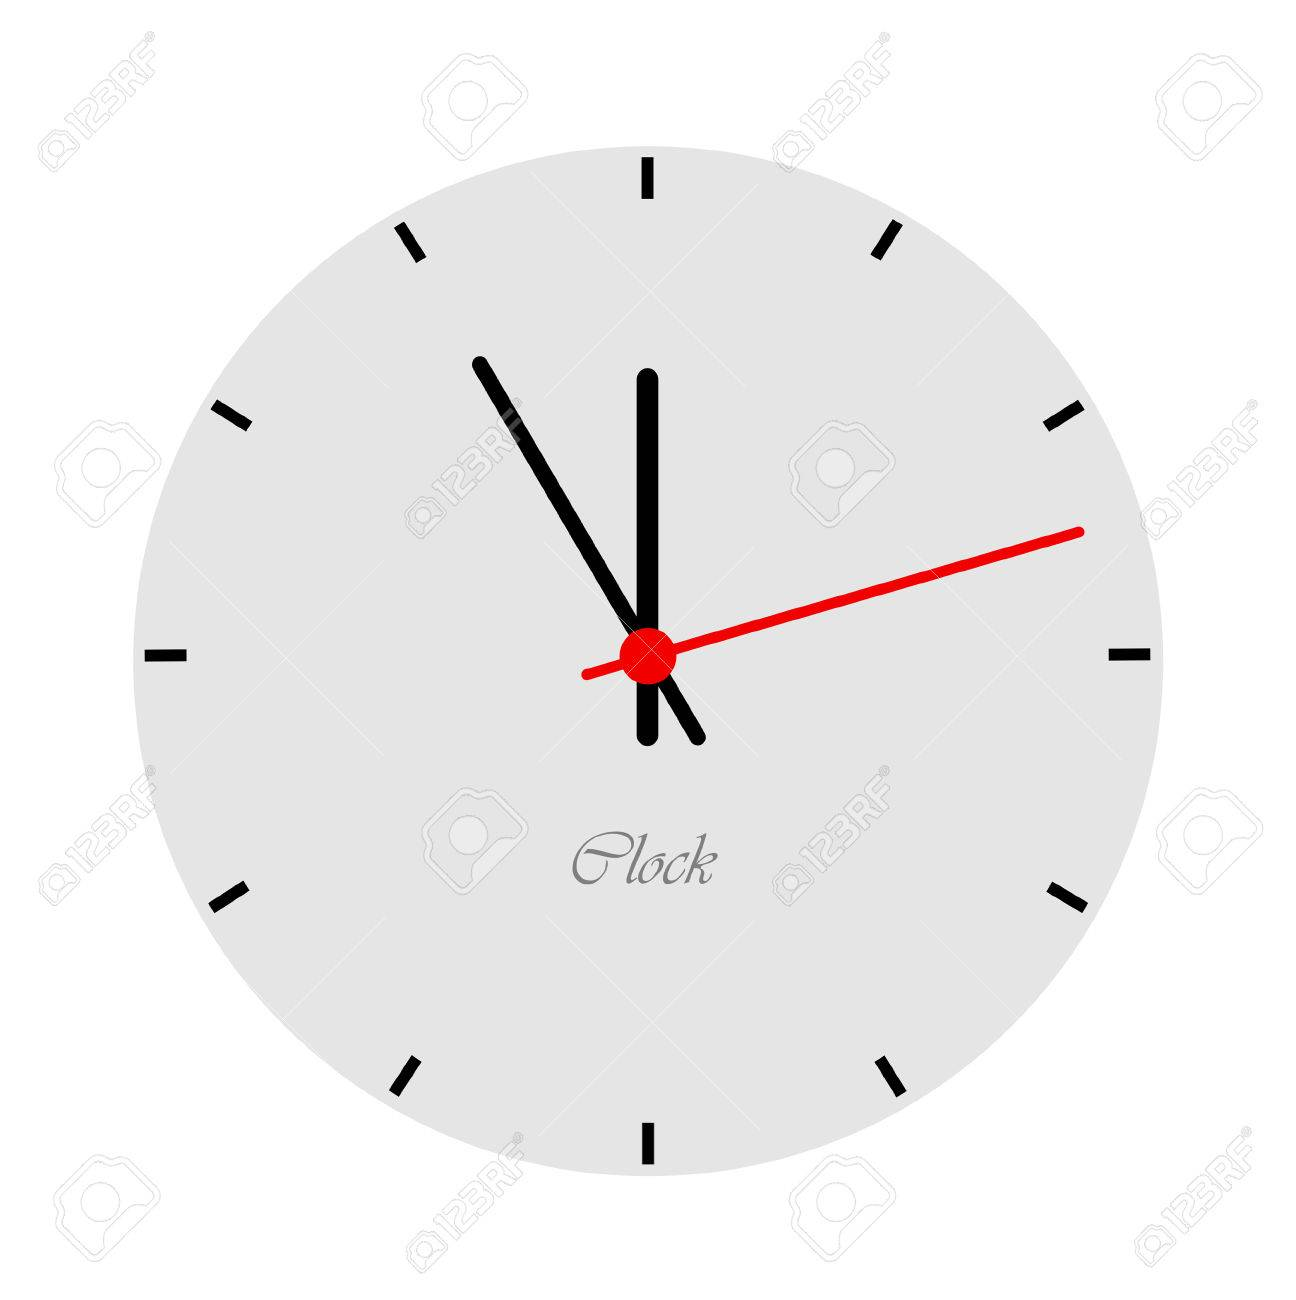 modern clock face royalty free cliparts vectors and stock  - modern clock face stock vector